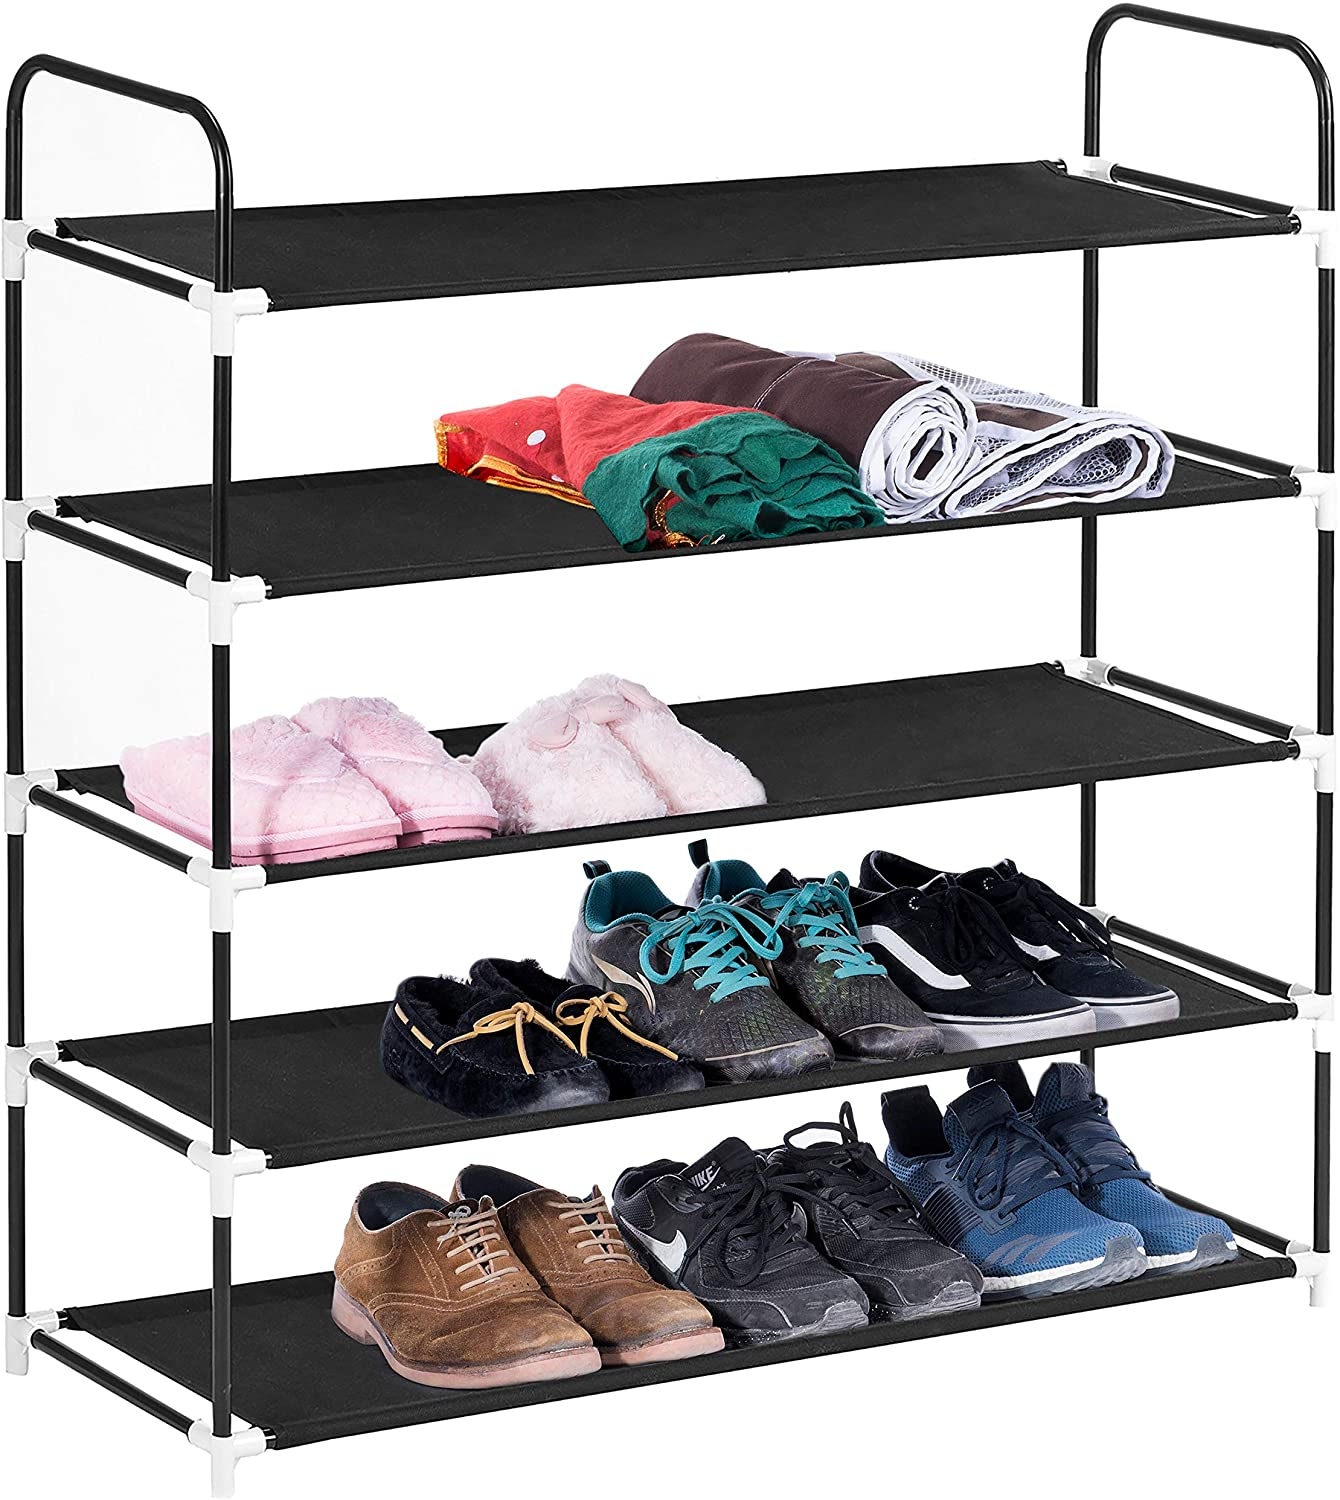 MaidMAX 5 Tiers Free Standing Shoe Rack for 25 Pairs of Shoes Organizer in Closet Entryway Hallway, Metal Frame and Fabric Shelves, 39.4 x 11.4 x 36.2'', Black